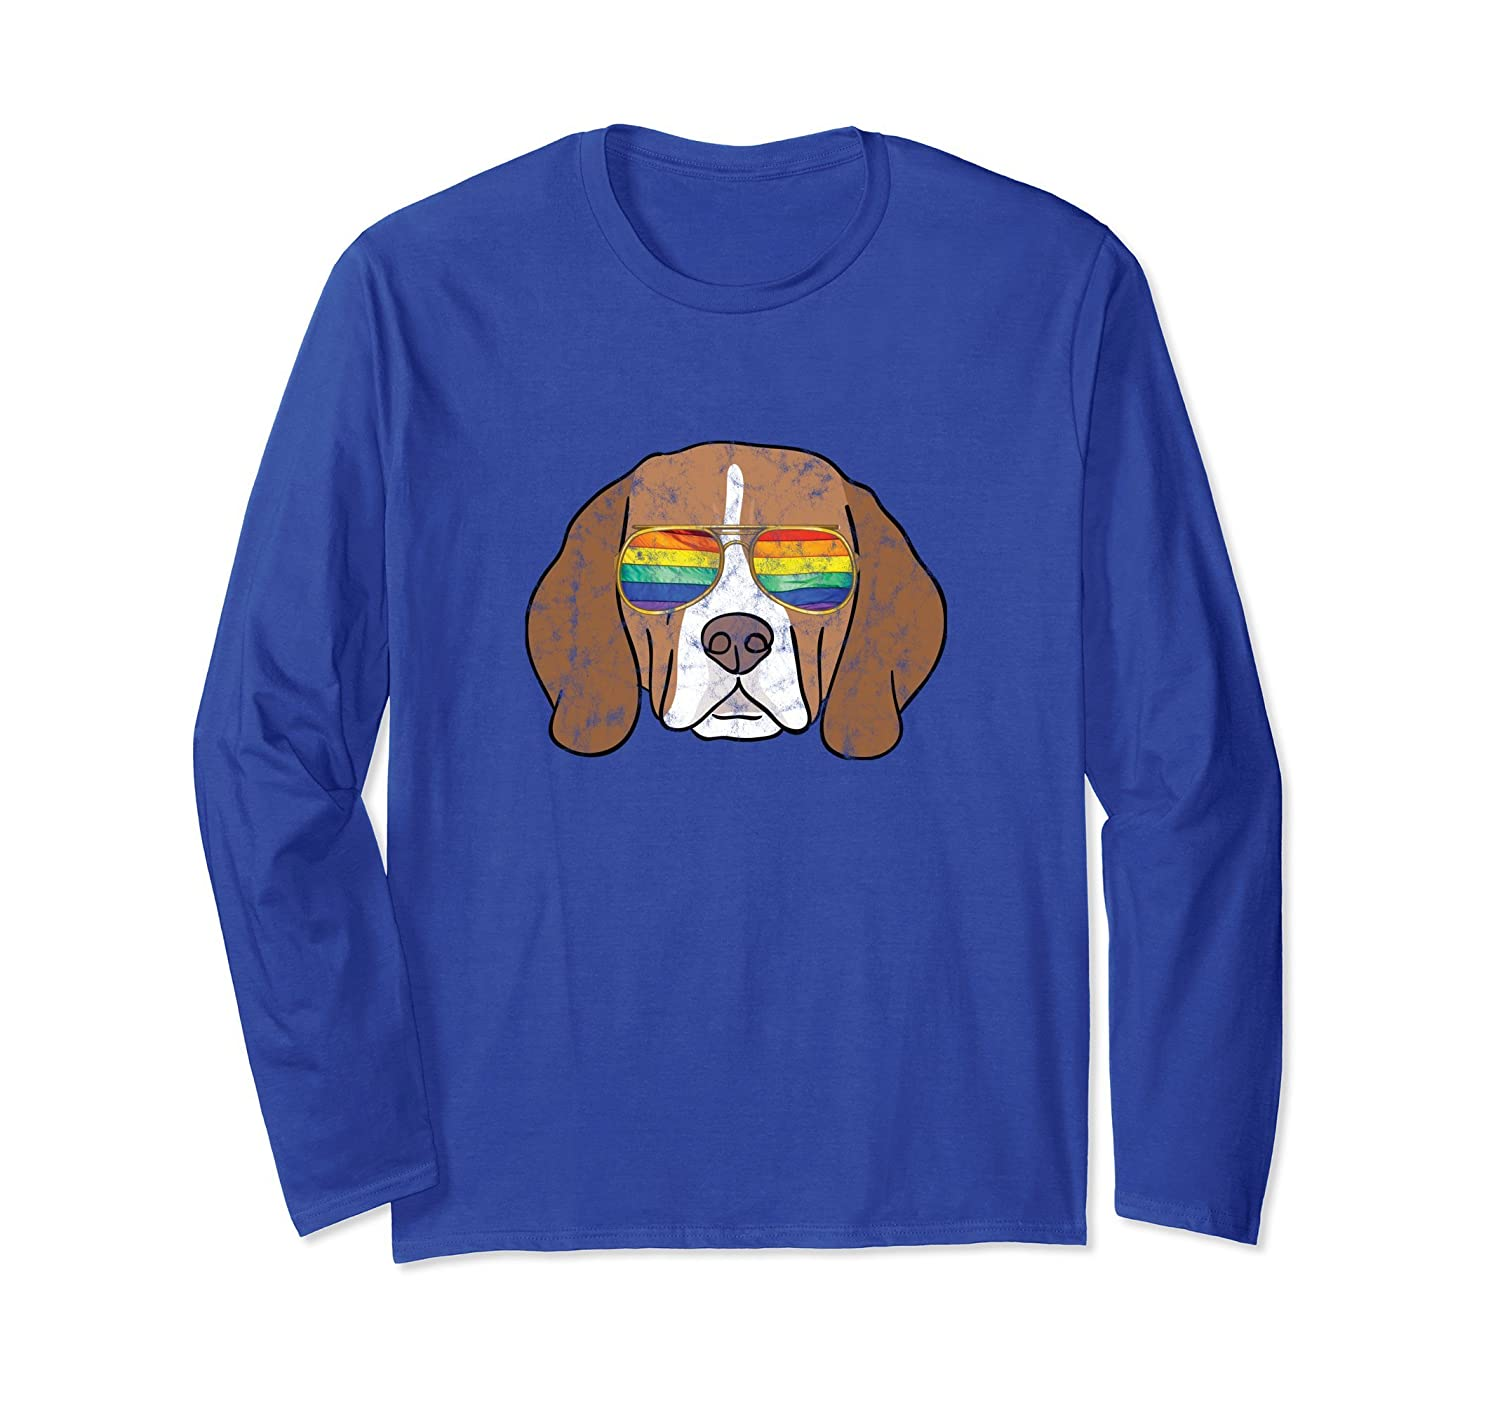 Beagle Gay Pride Long Sleeve Tee Men Gay LGBT Rainbow Flag-alottee gift